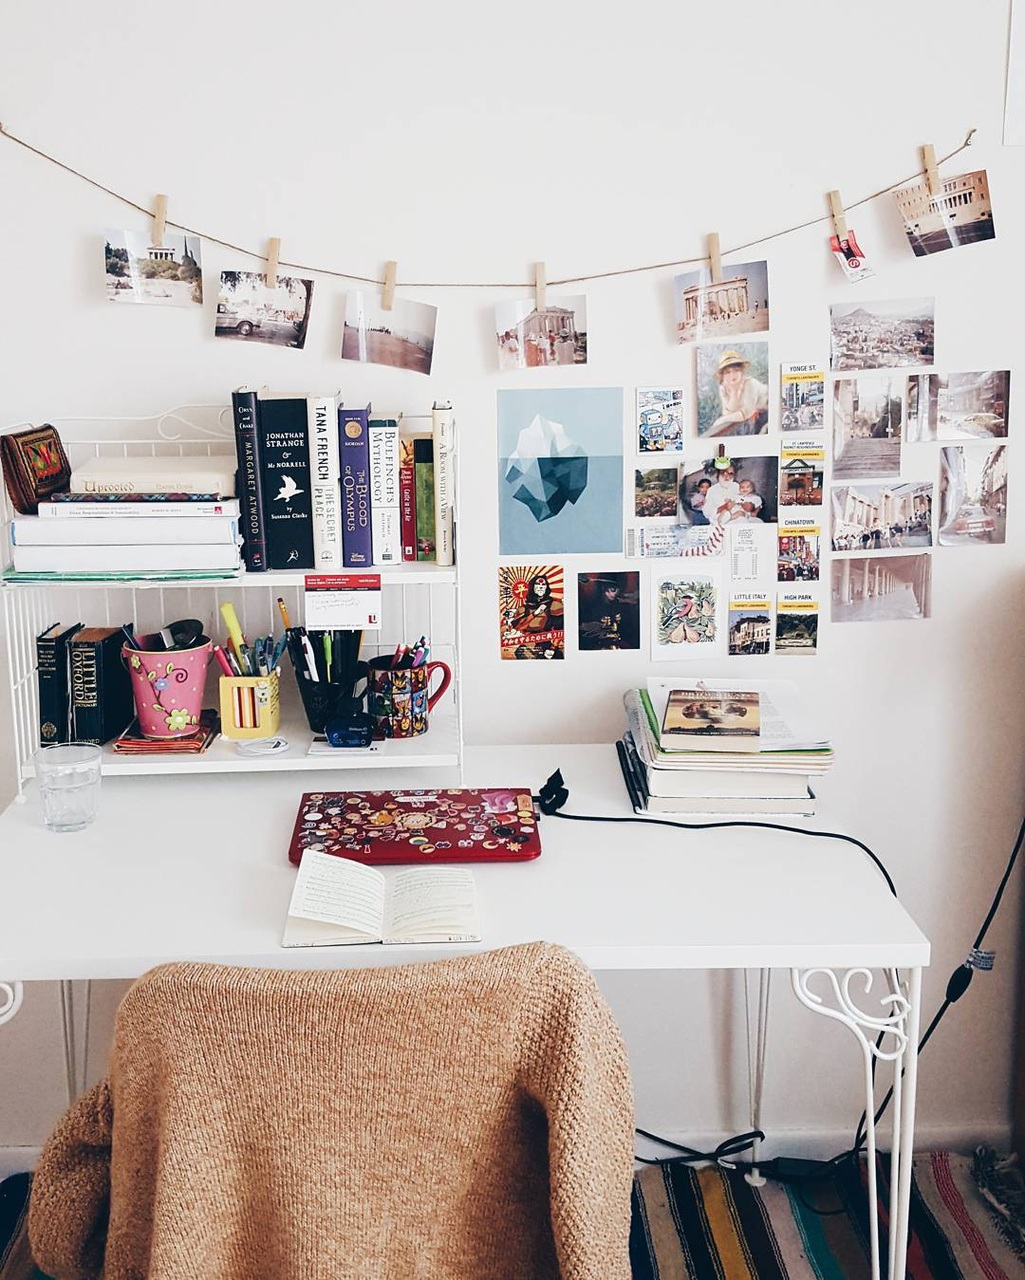 68 Images About Diy Kpop Room Decor On We Heart It See More About Room Kpop And Aesthetic